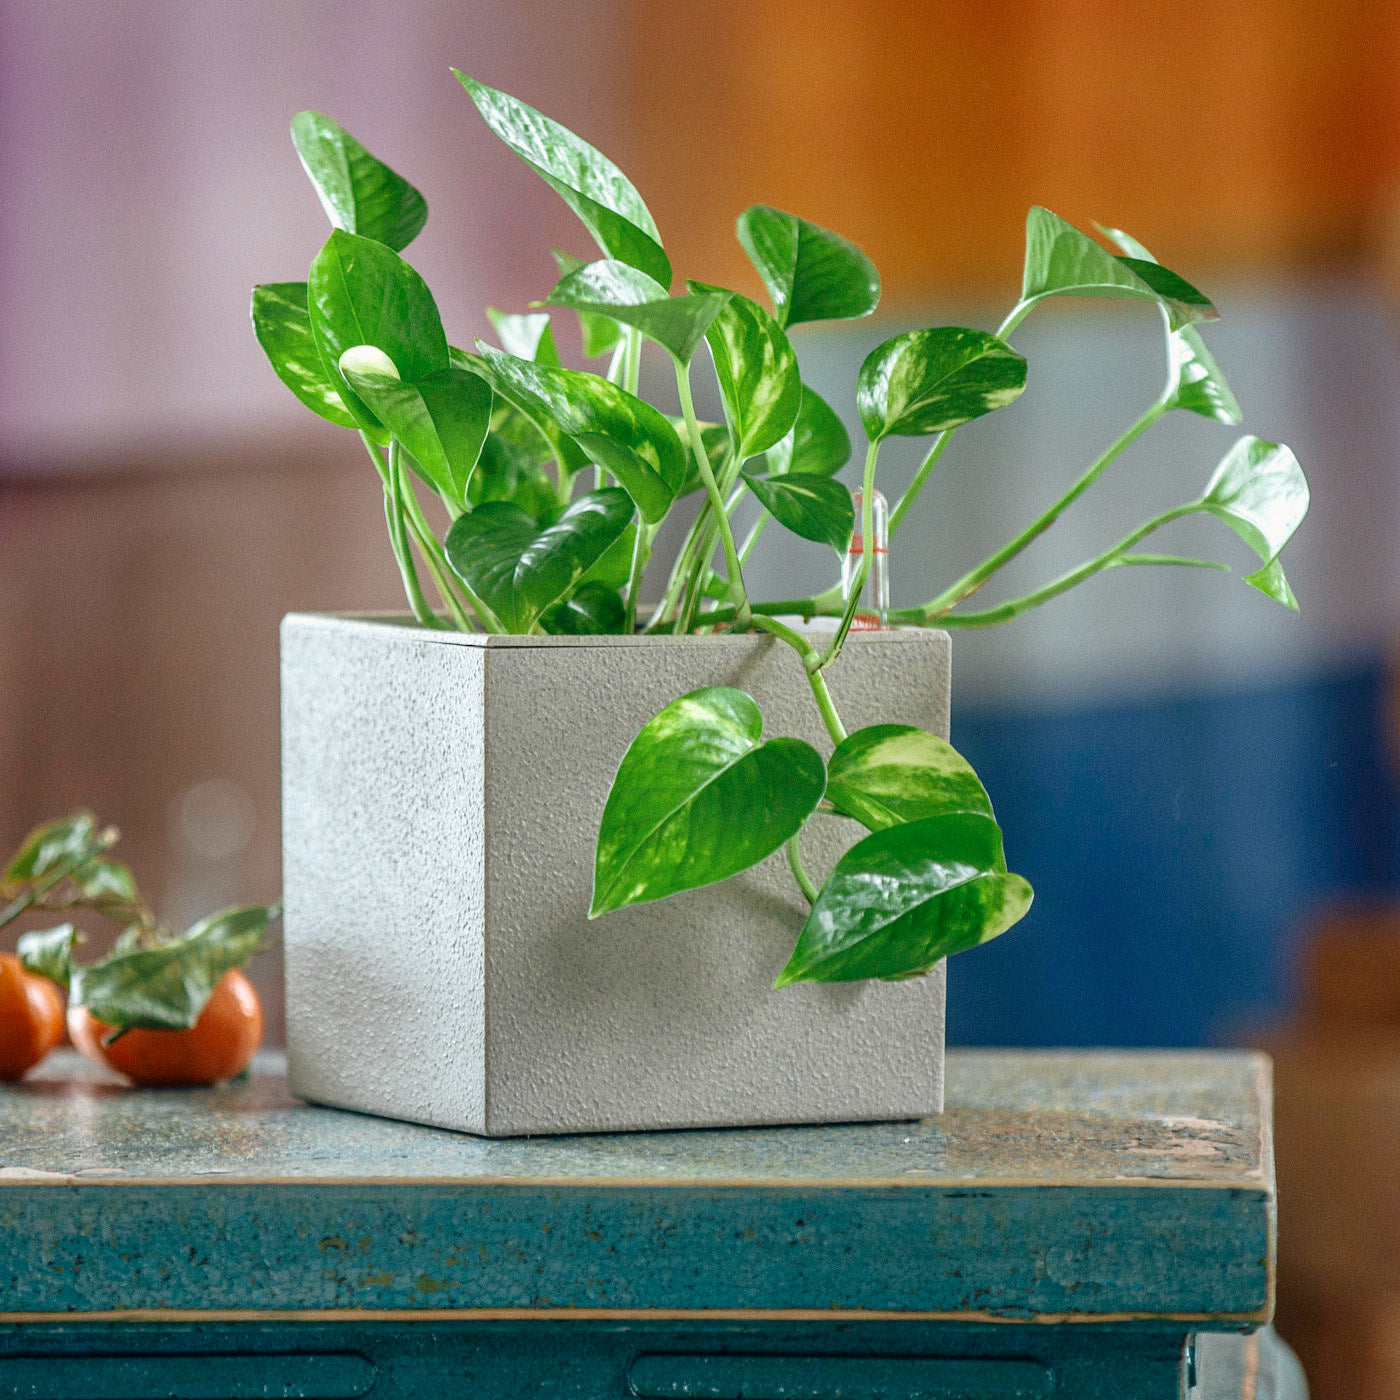 Pothos Plant In Lechuza Canto 14 Beige Planter | My City Plants